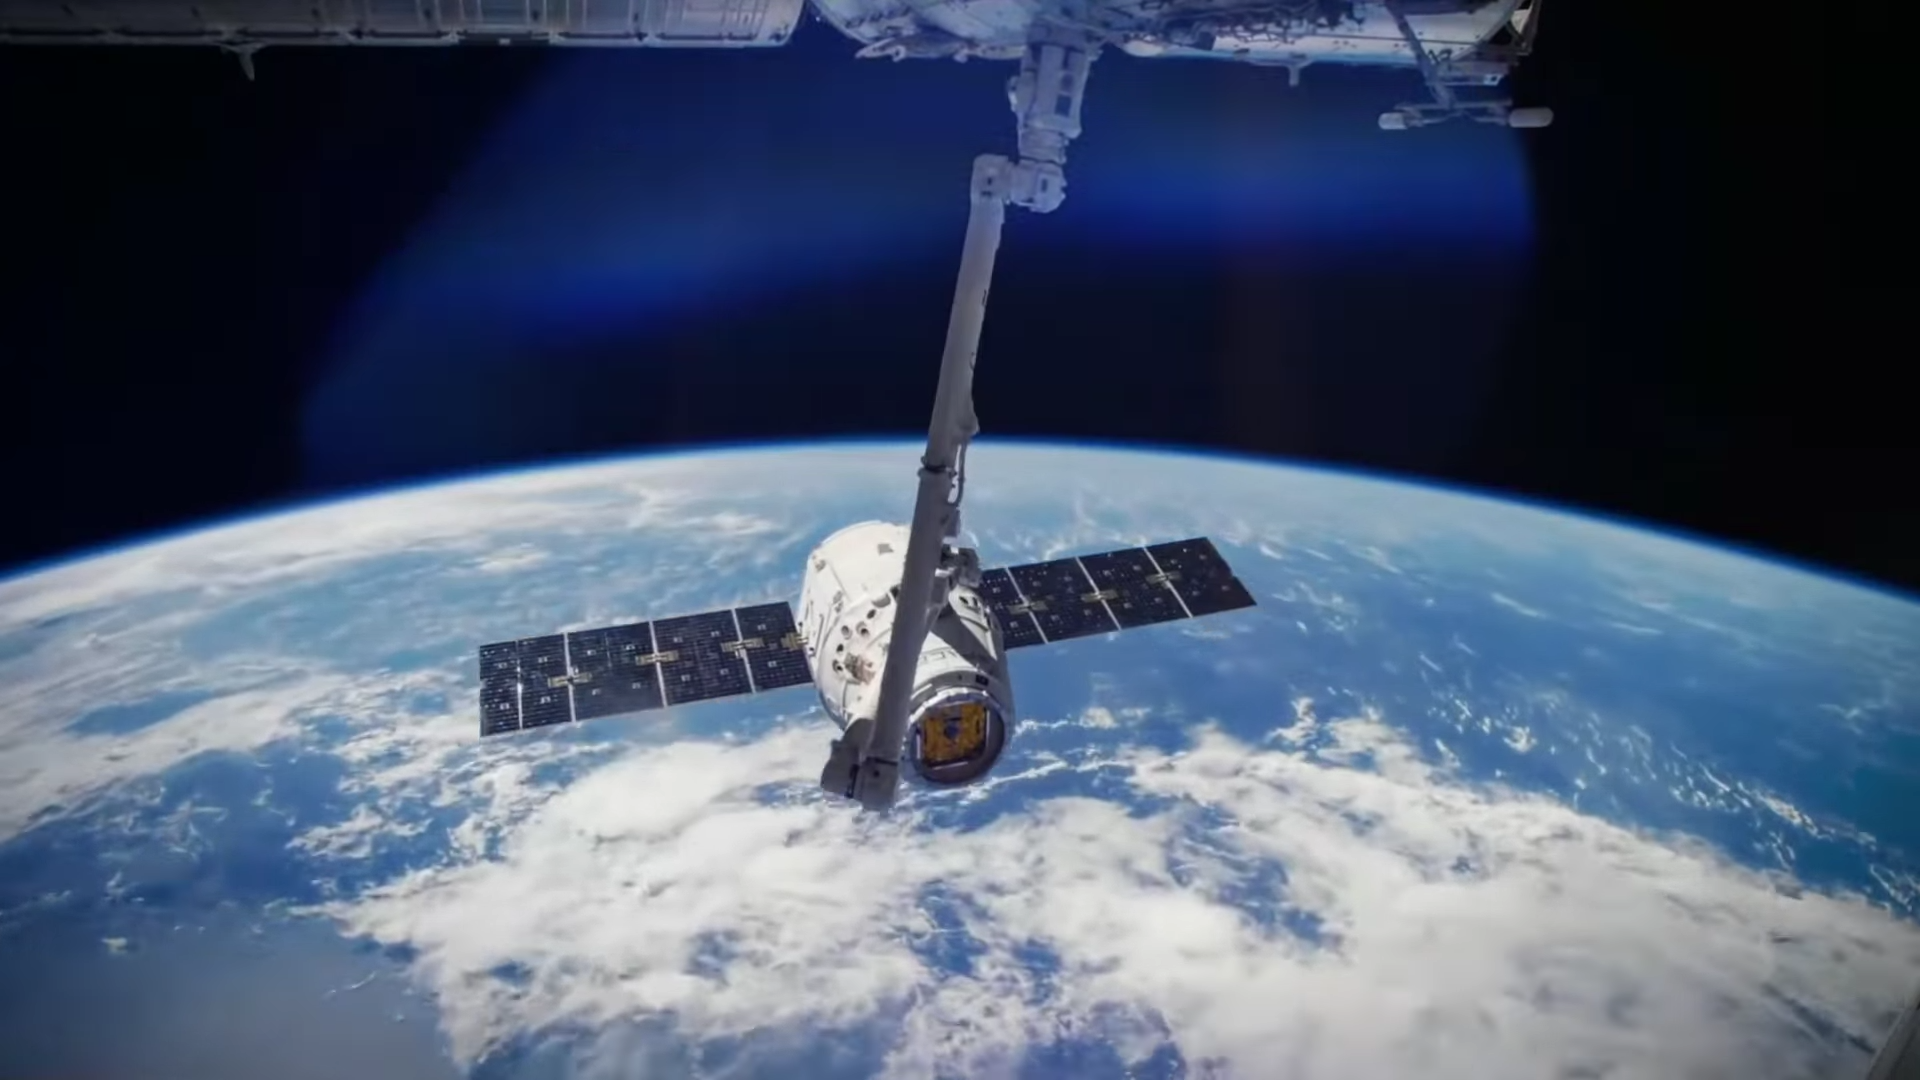 Image Credit: SpaceX/PAZ Mission (Youtube/SpaceX)